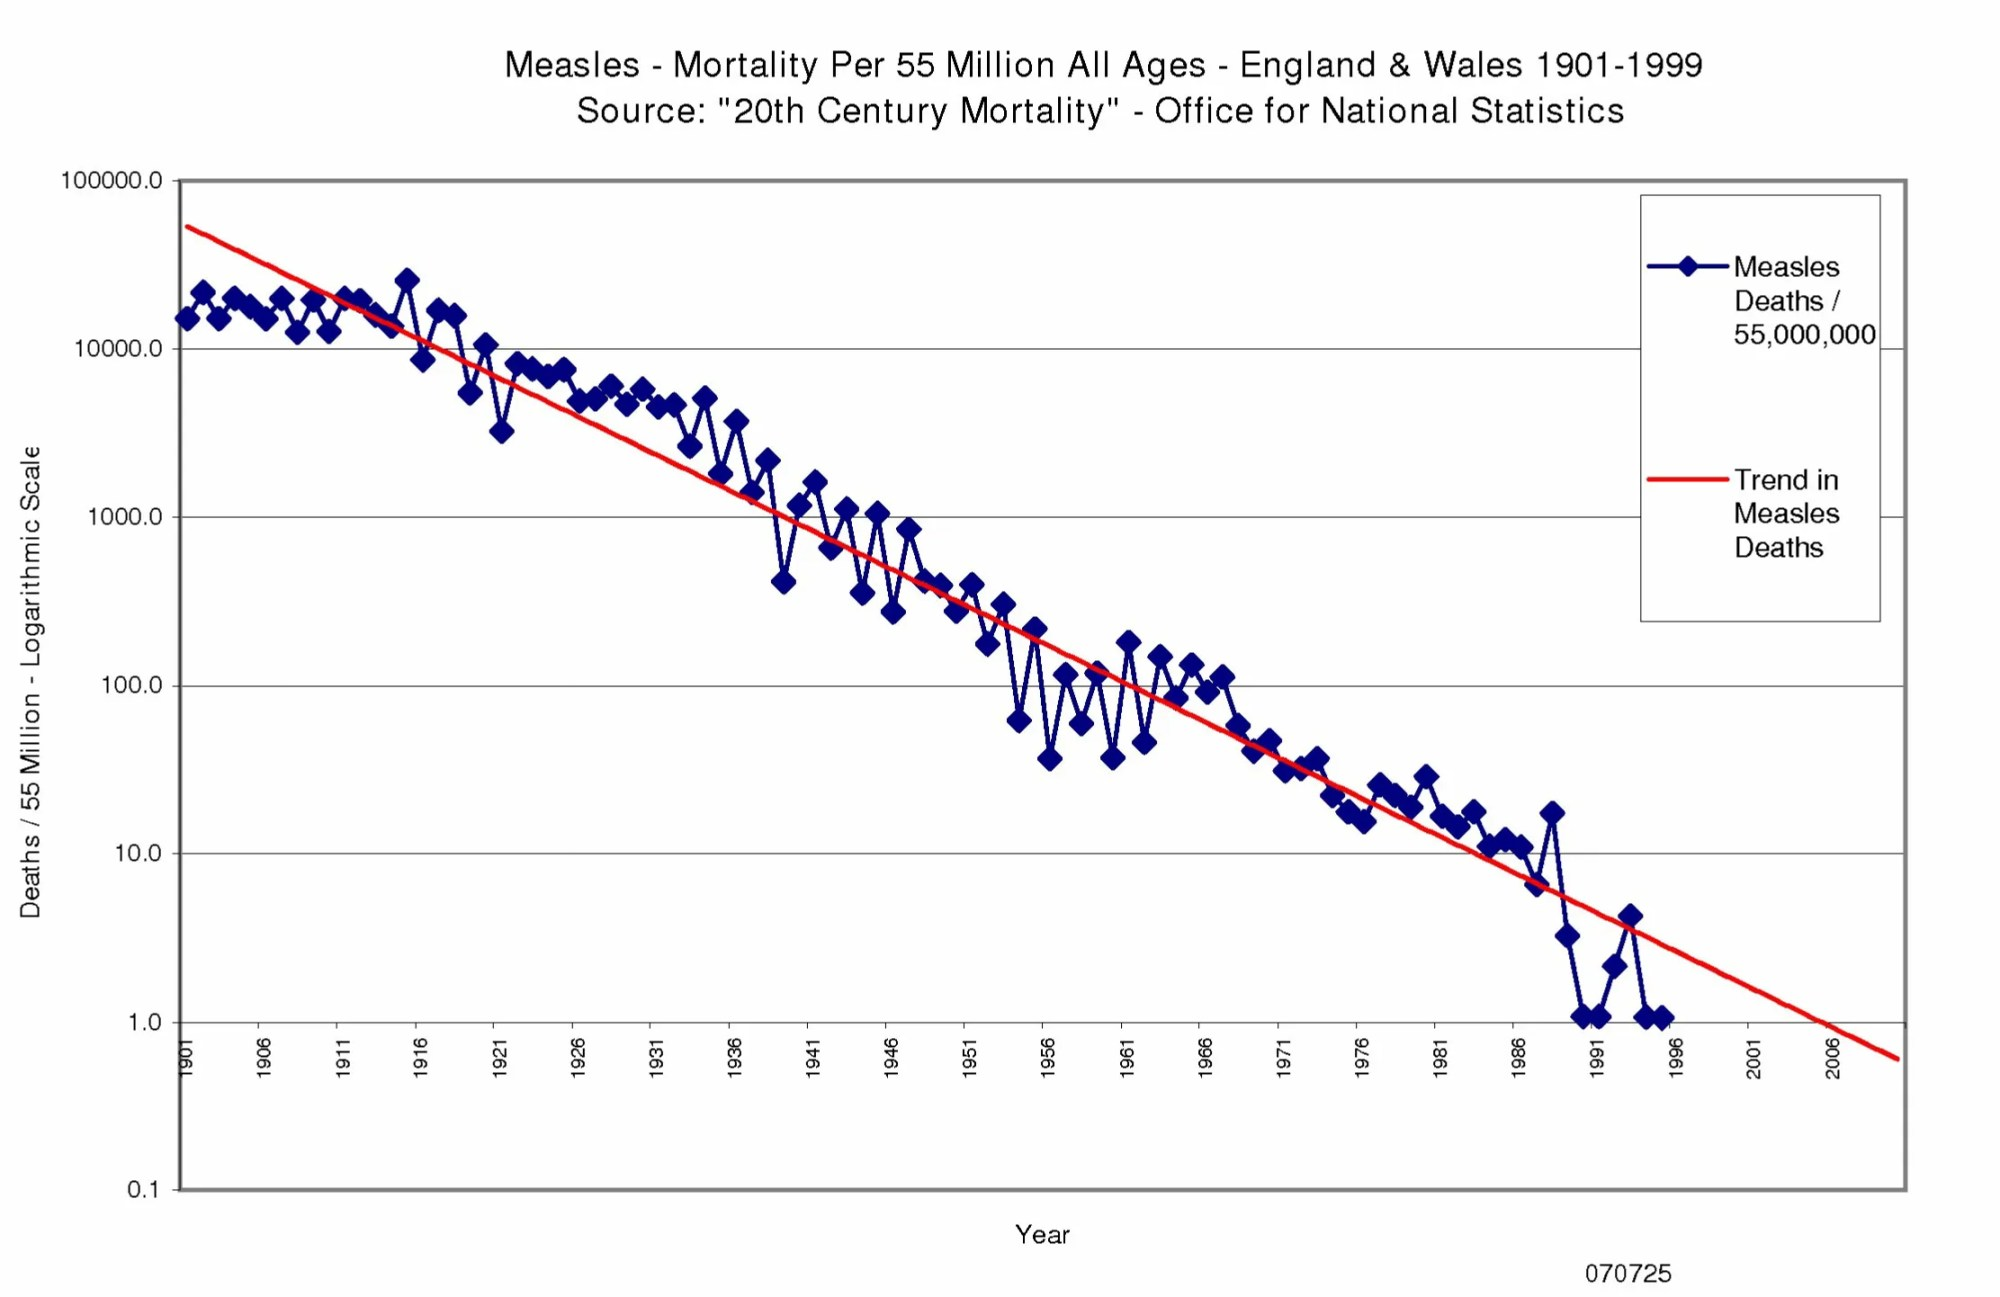 hight resolution of measles mortality england wales 1901 to 1999